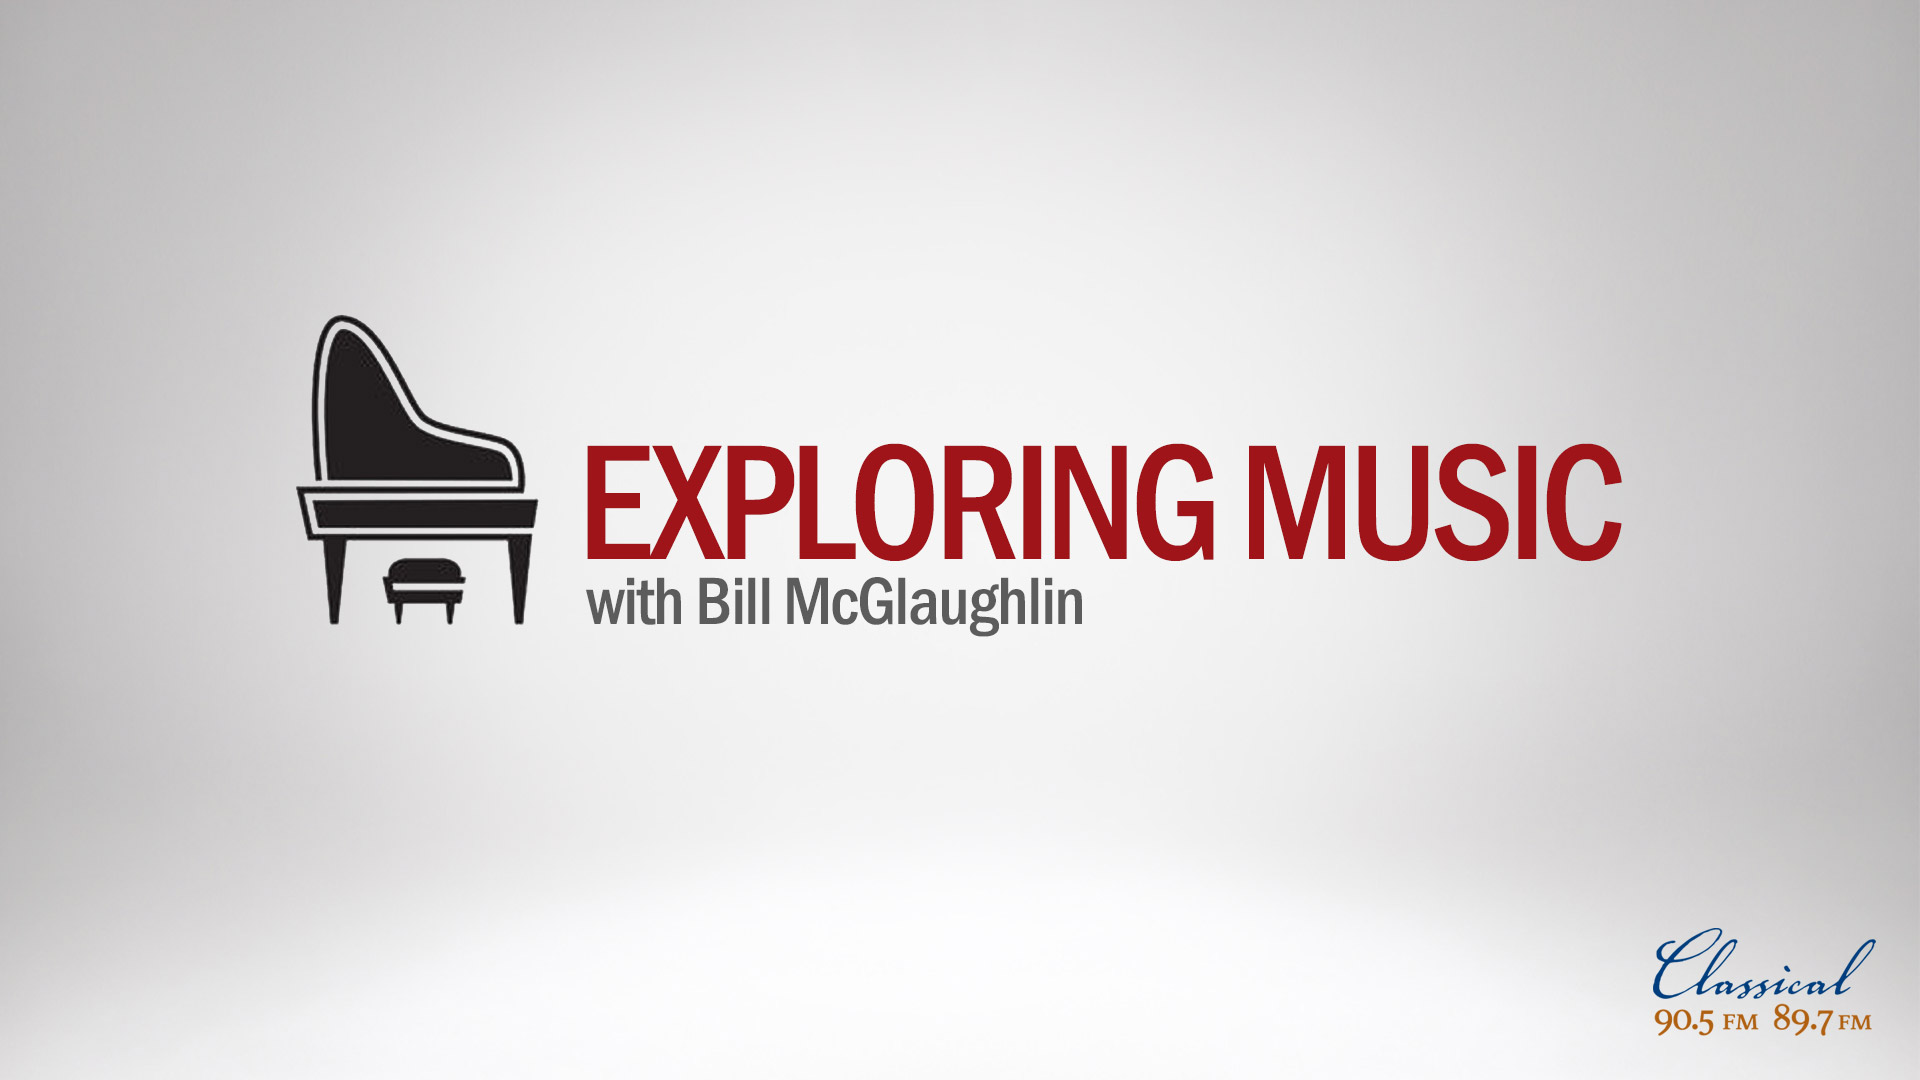 Exploring Music with Bill McGlaughlin